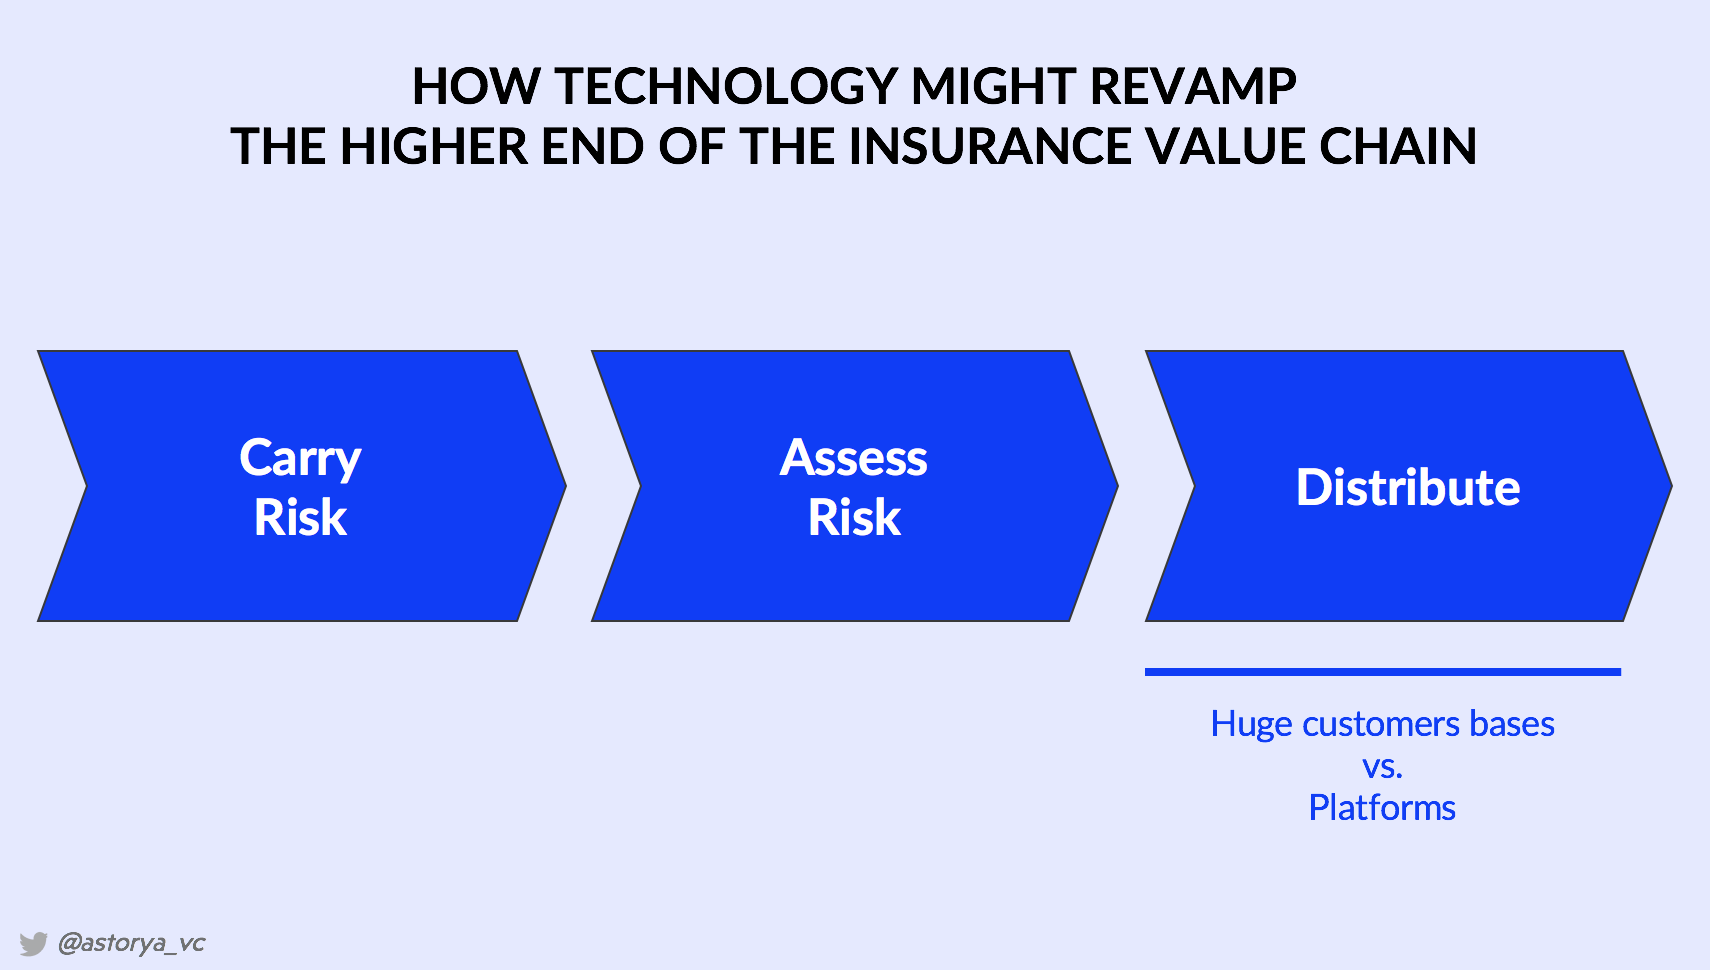 [Thesis] Insurers will not disappear but… change drastically! (1/3, Distribution)